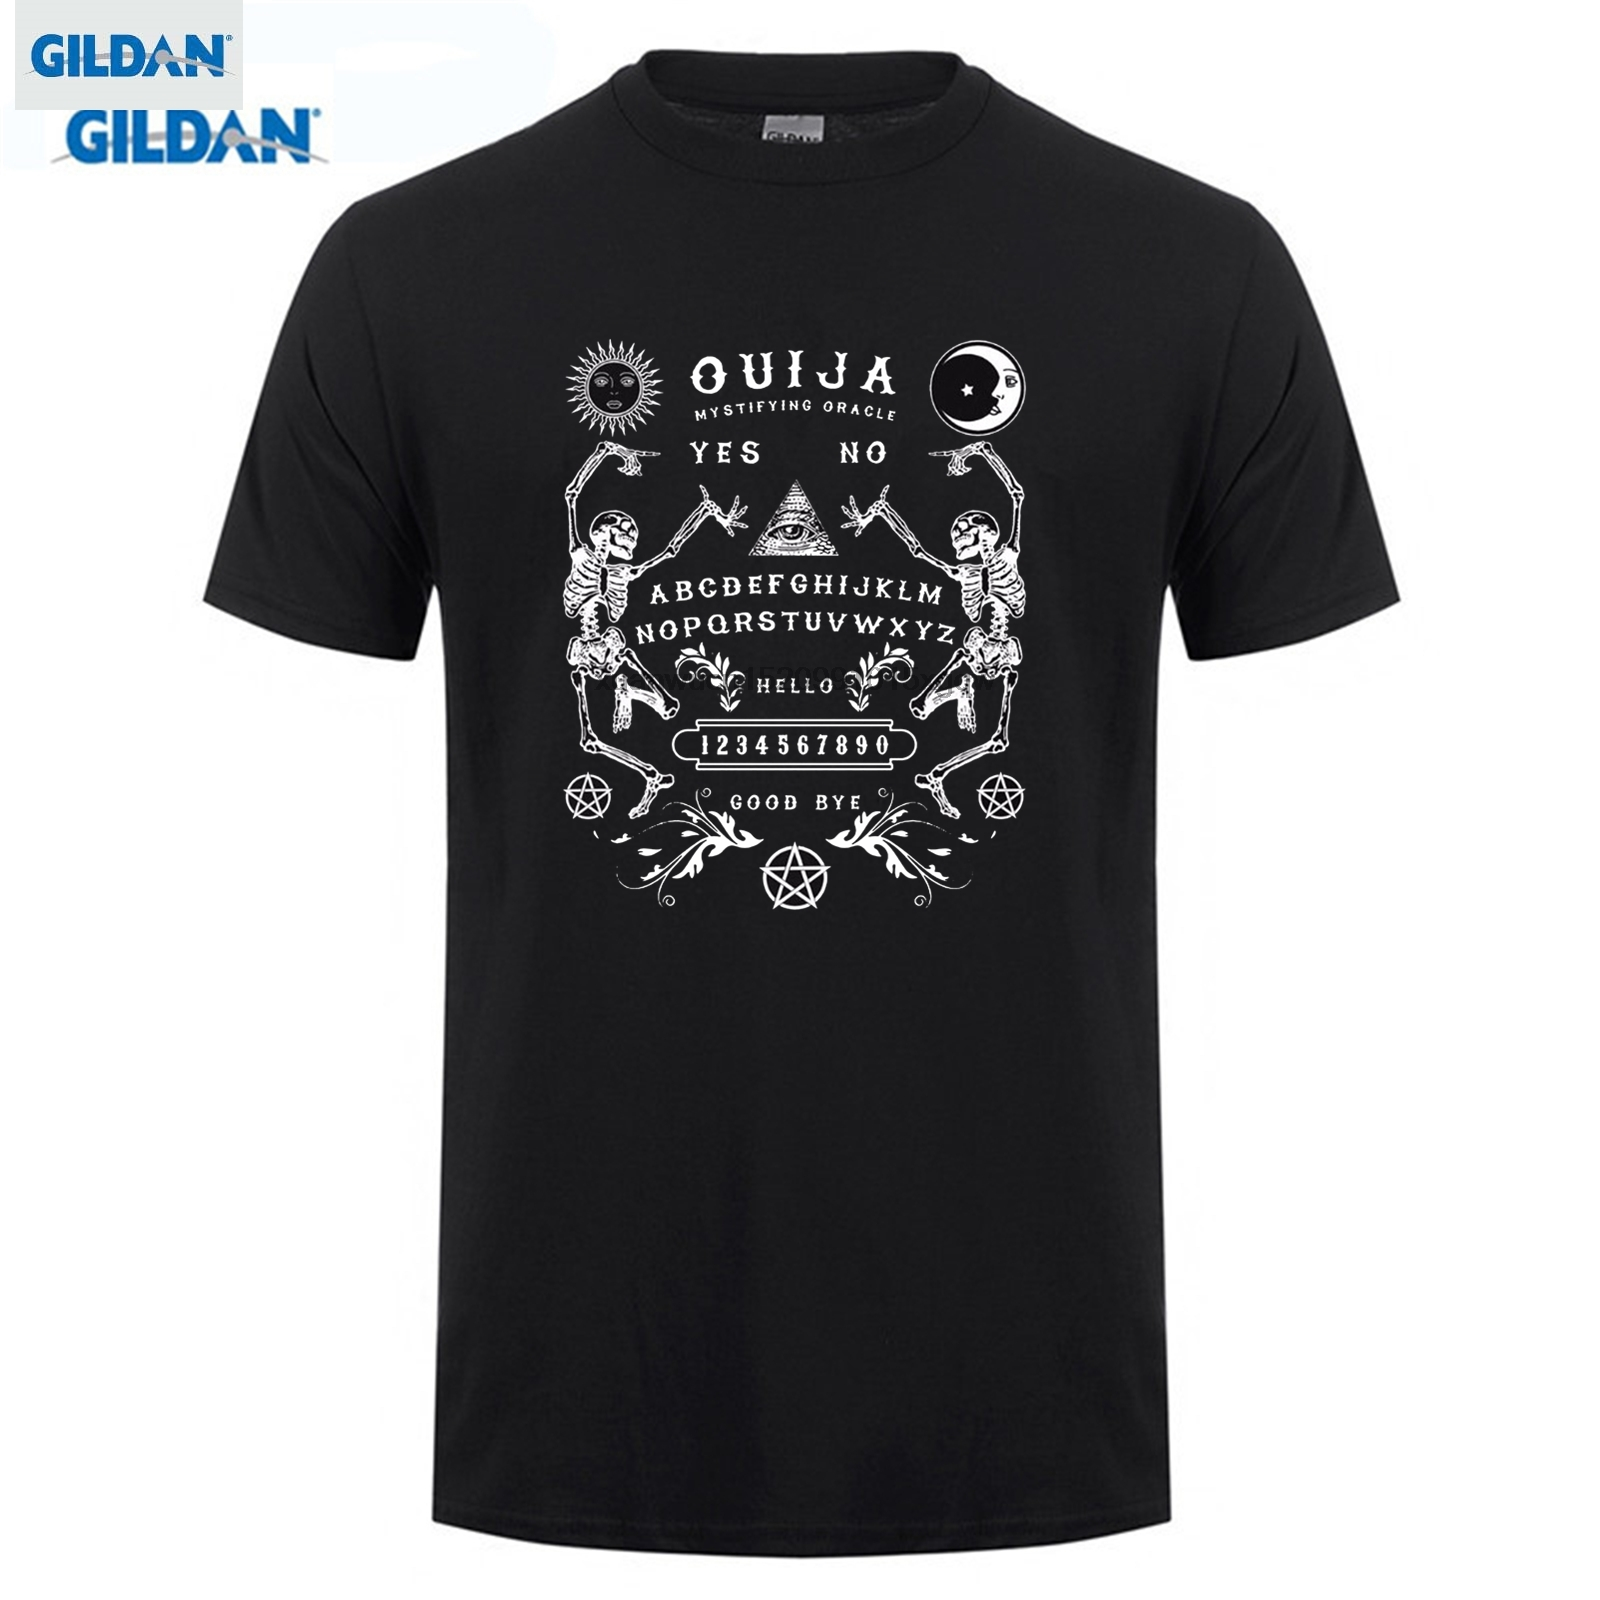 GILDAN Arrival Men Cotton Men Tee Shirt High Quality Ouija Board Skeletons T-Shirt - Direct From Stockist crossfit T-Shirt